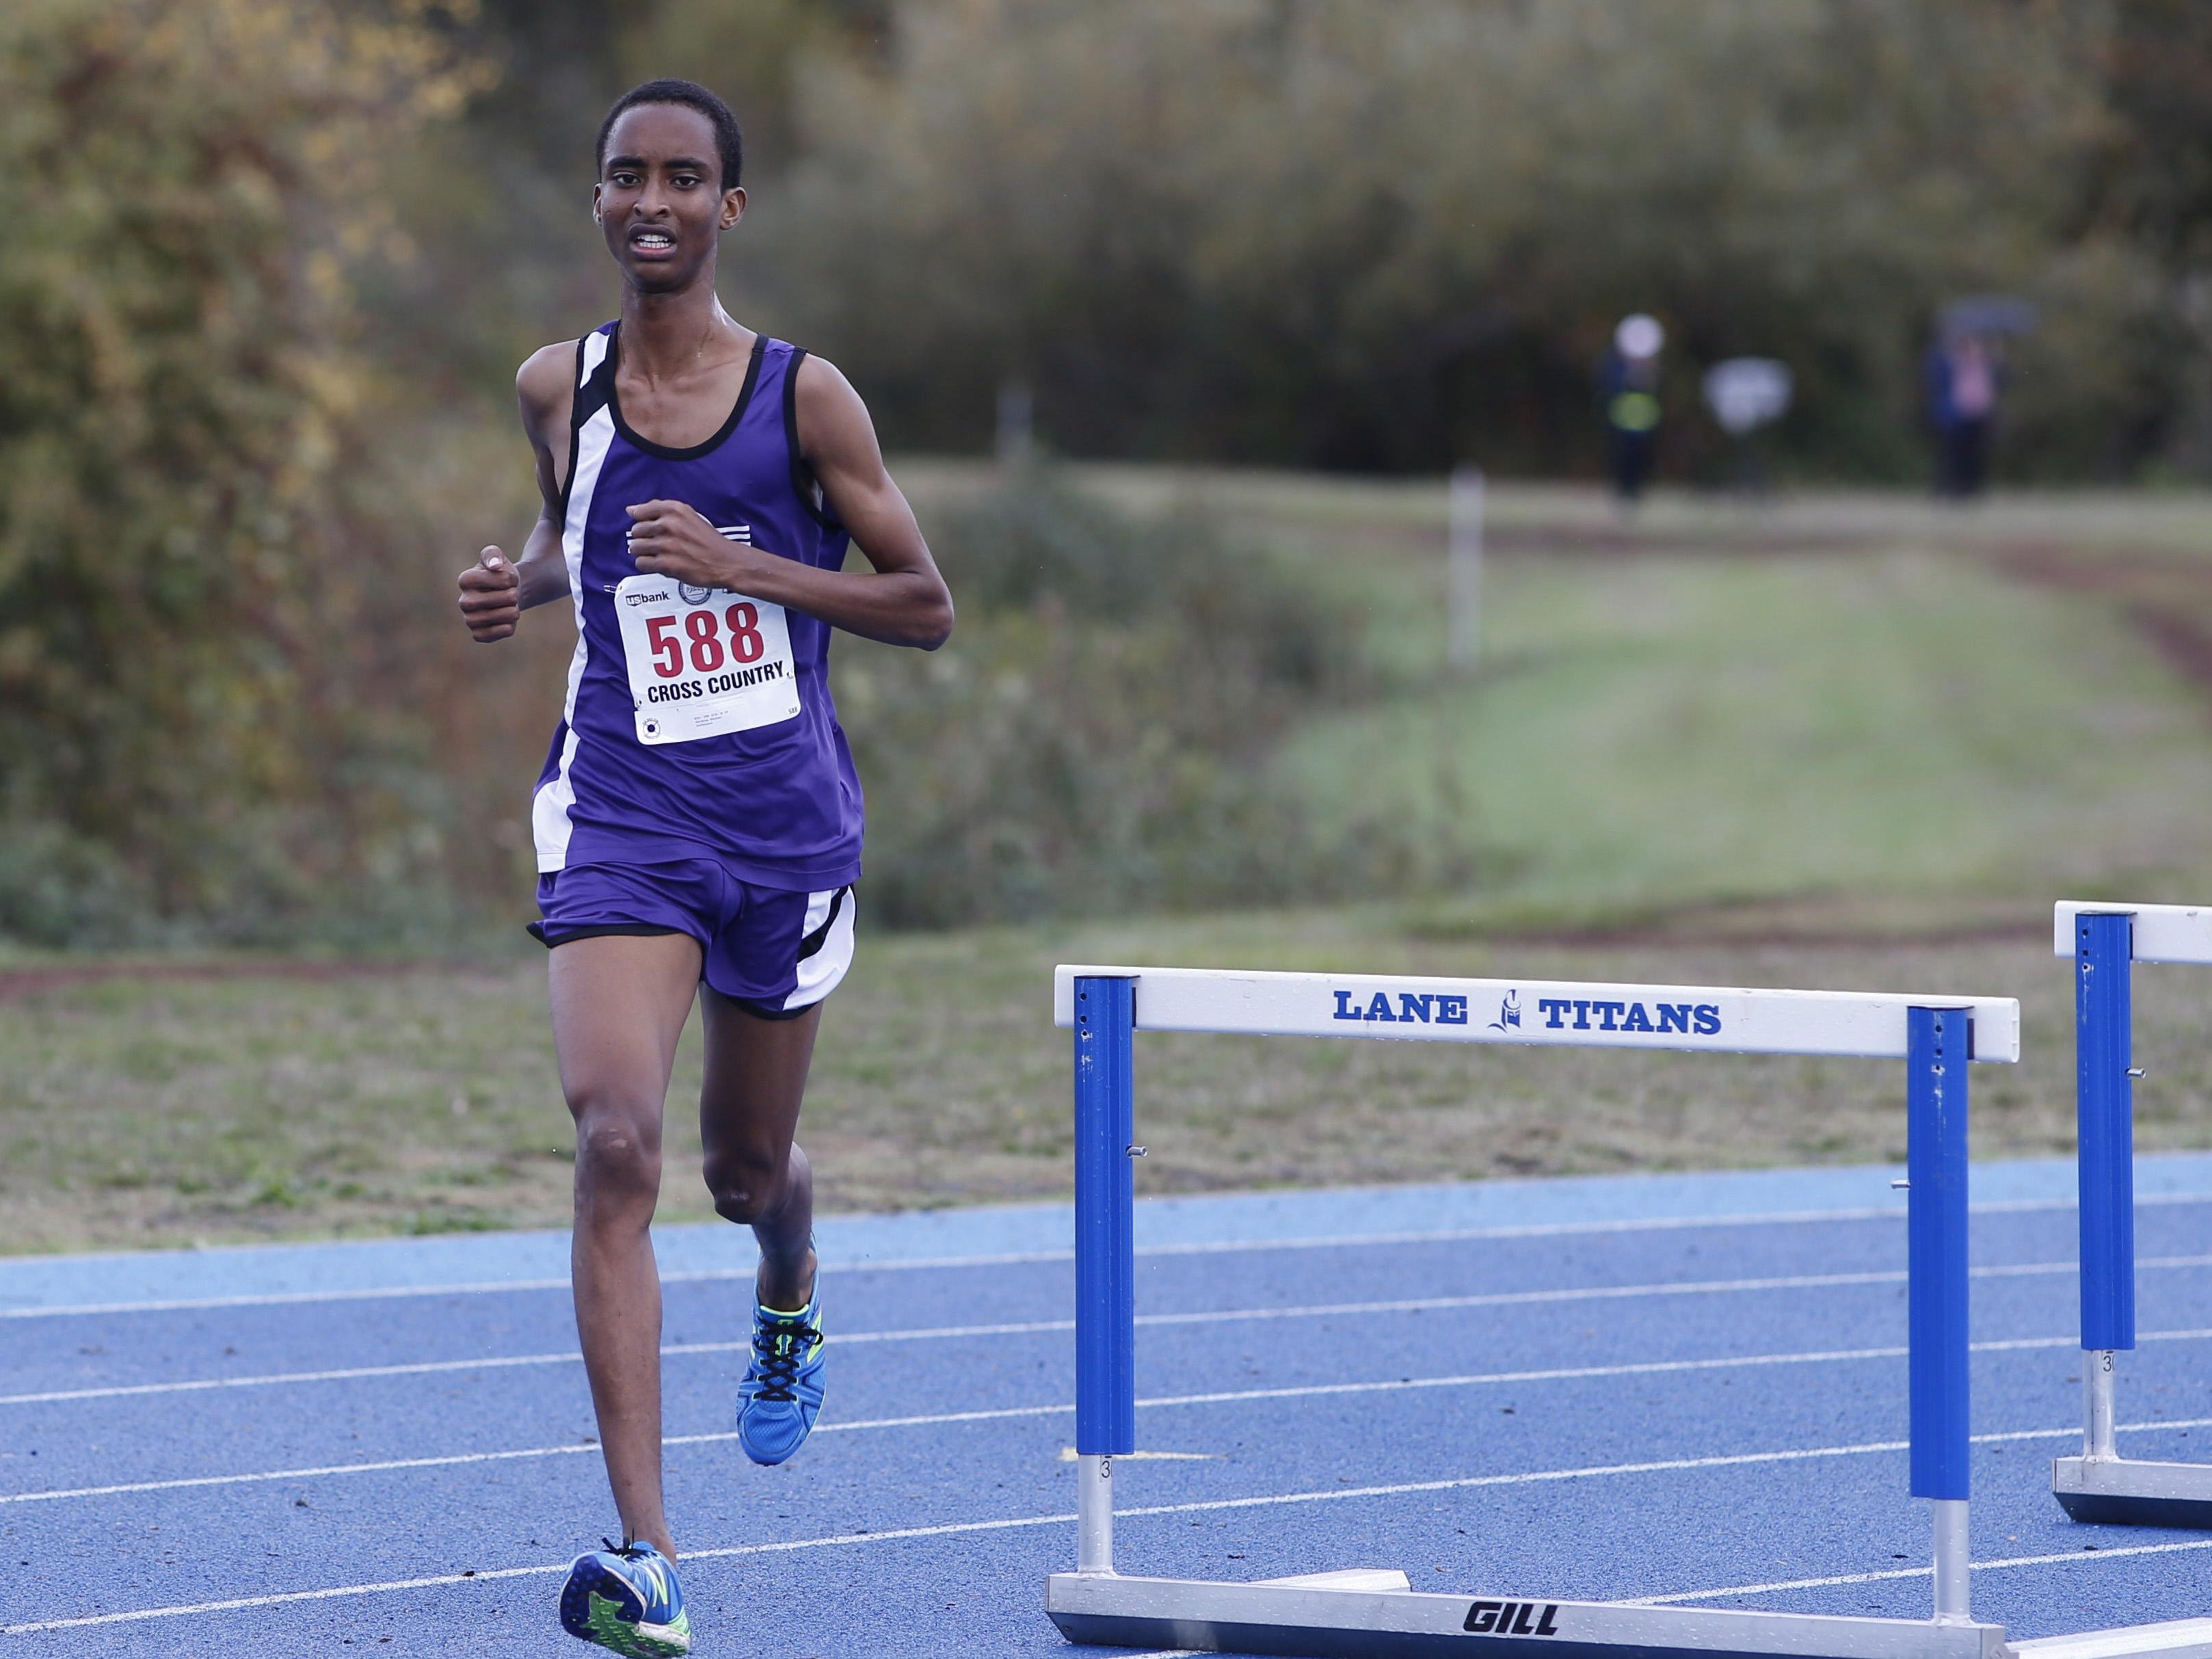 Jefferson's Hassan Ibrahim runs to a second place finish in the 3A/2/1A state cross country championships at Lane Community College on Saturday, Oct. 31, 2015. (Timothy J. Gonzalez/For the Statesman Journal)